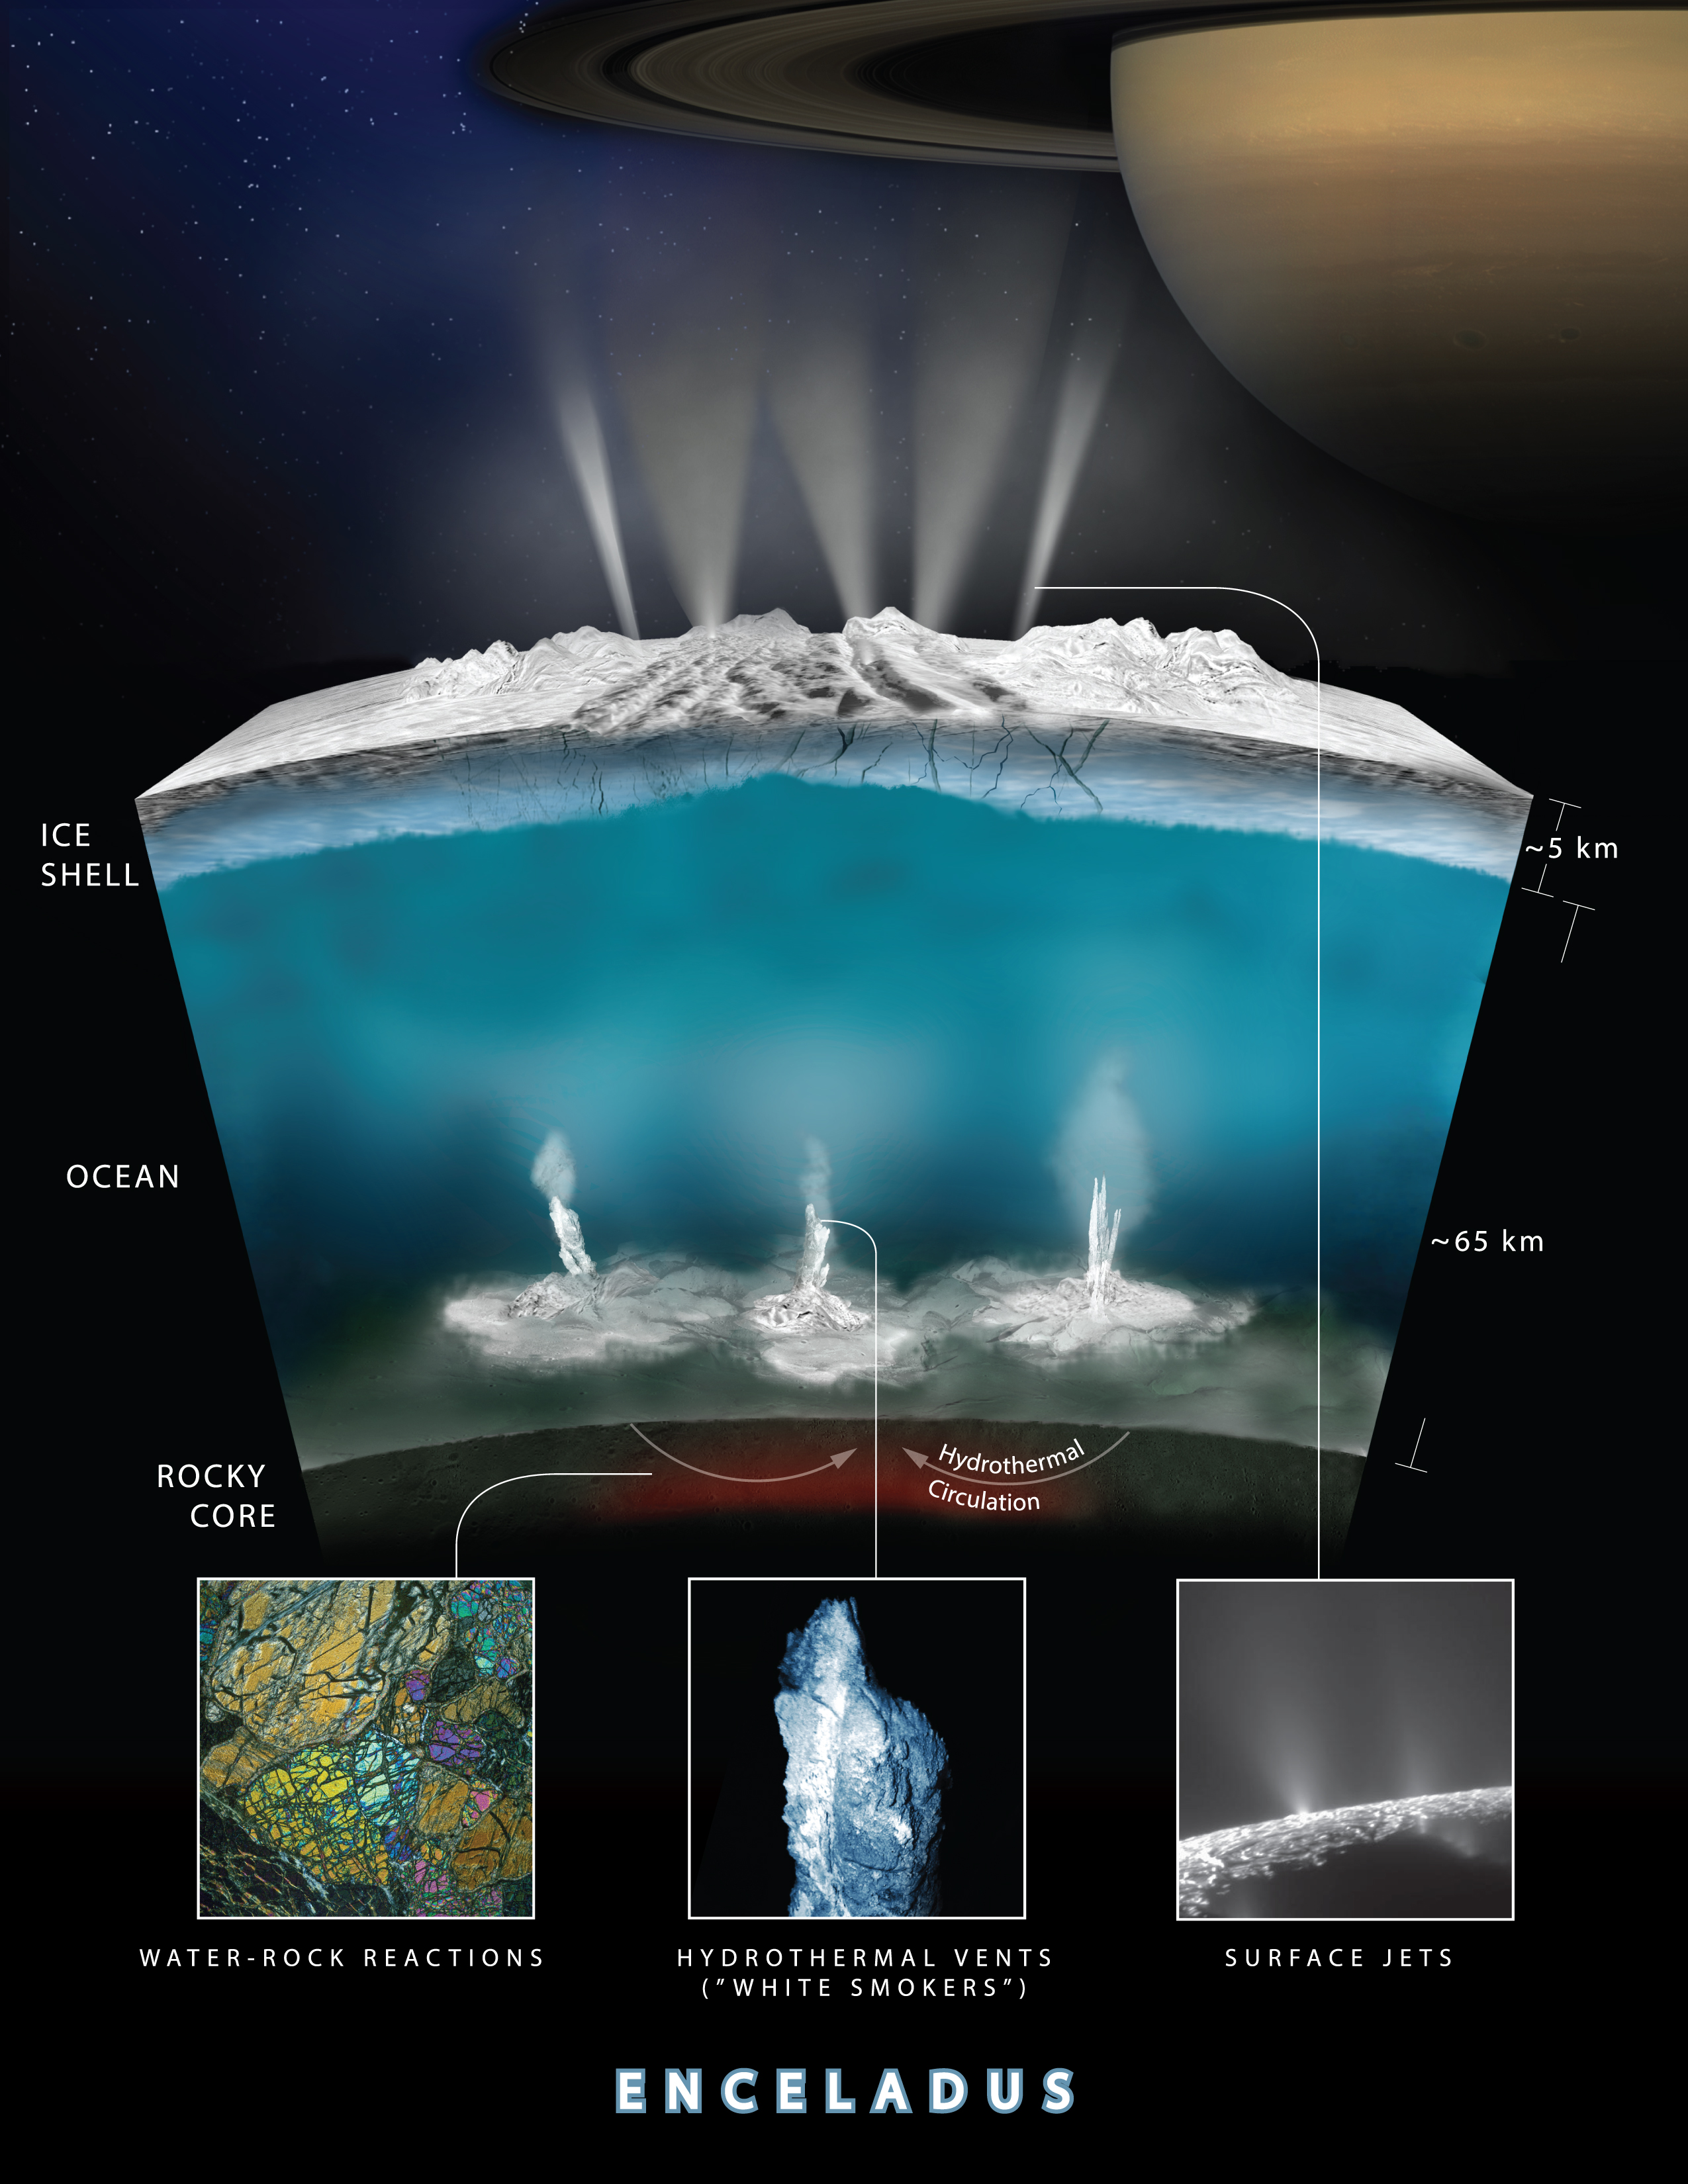 This graphic illustrates how Cassini scientists think water interacts with rock at the bottom of the ocean of Saturn's icy moon Enceladus, producing hydrogen gas. Credits: NASA/JPL-Caltech Image credit: